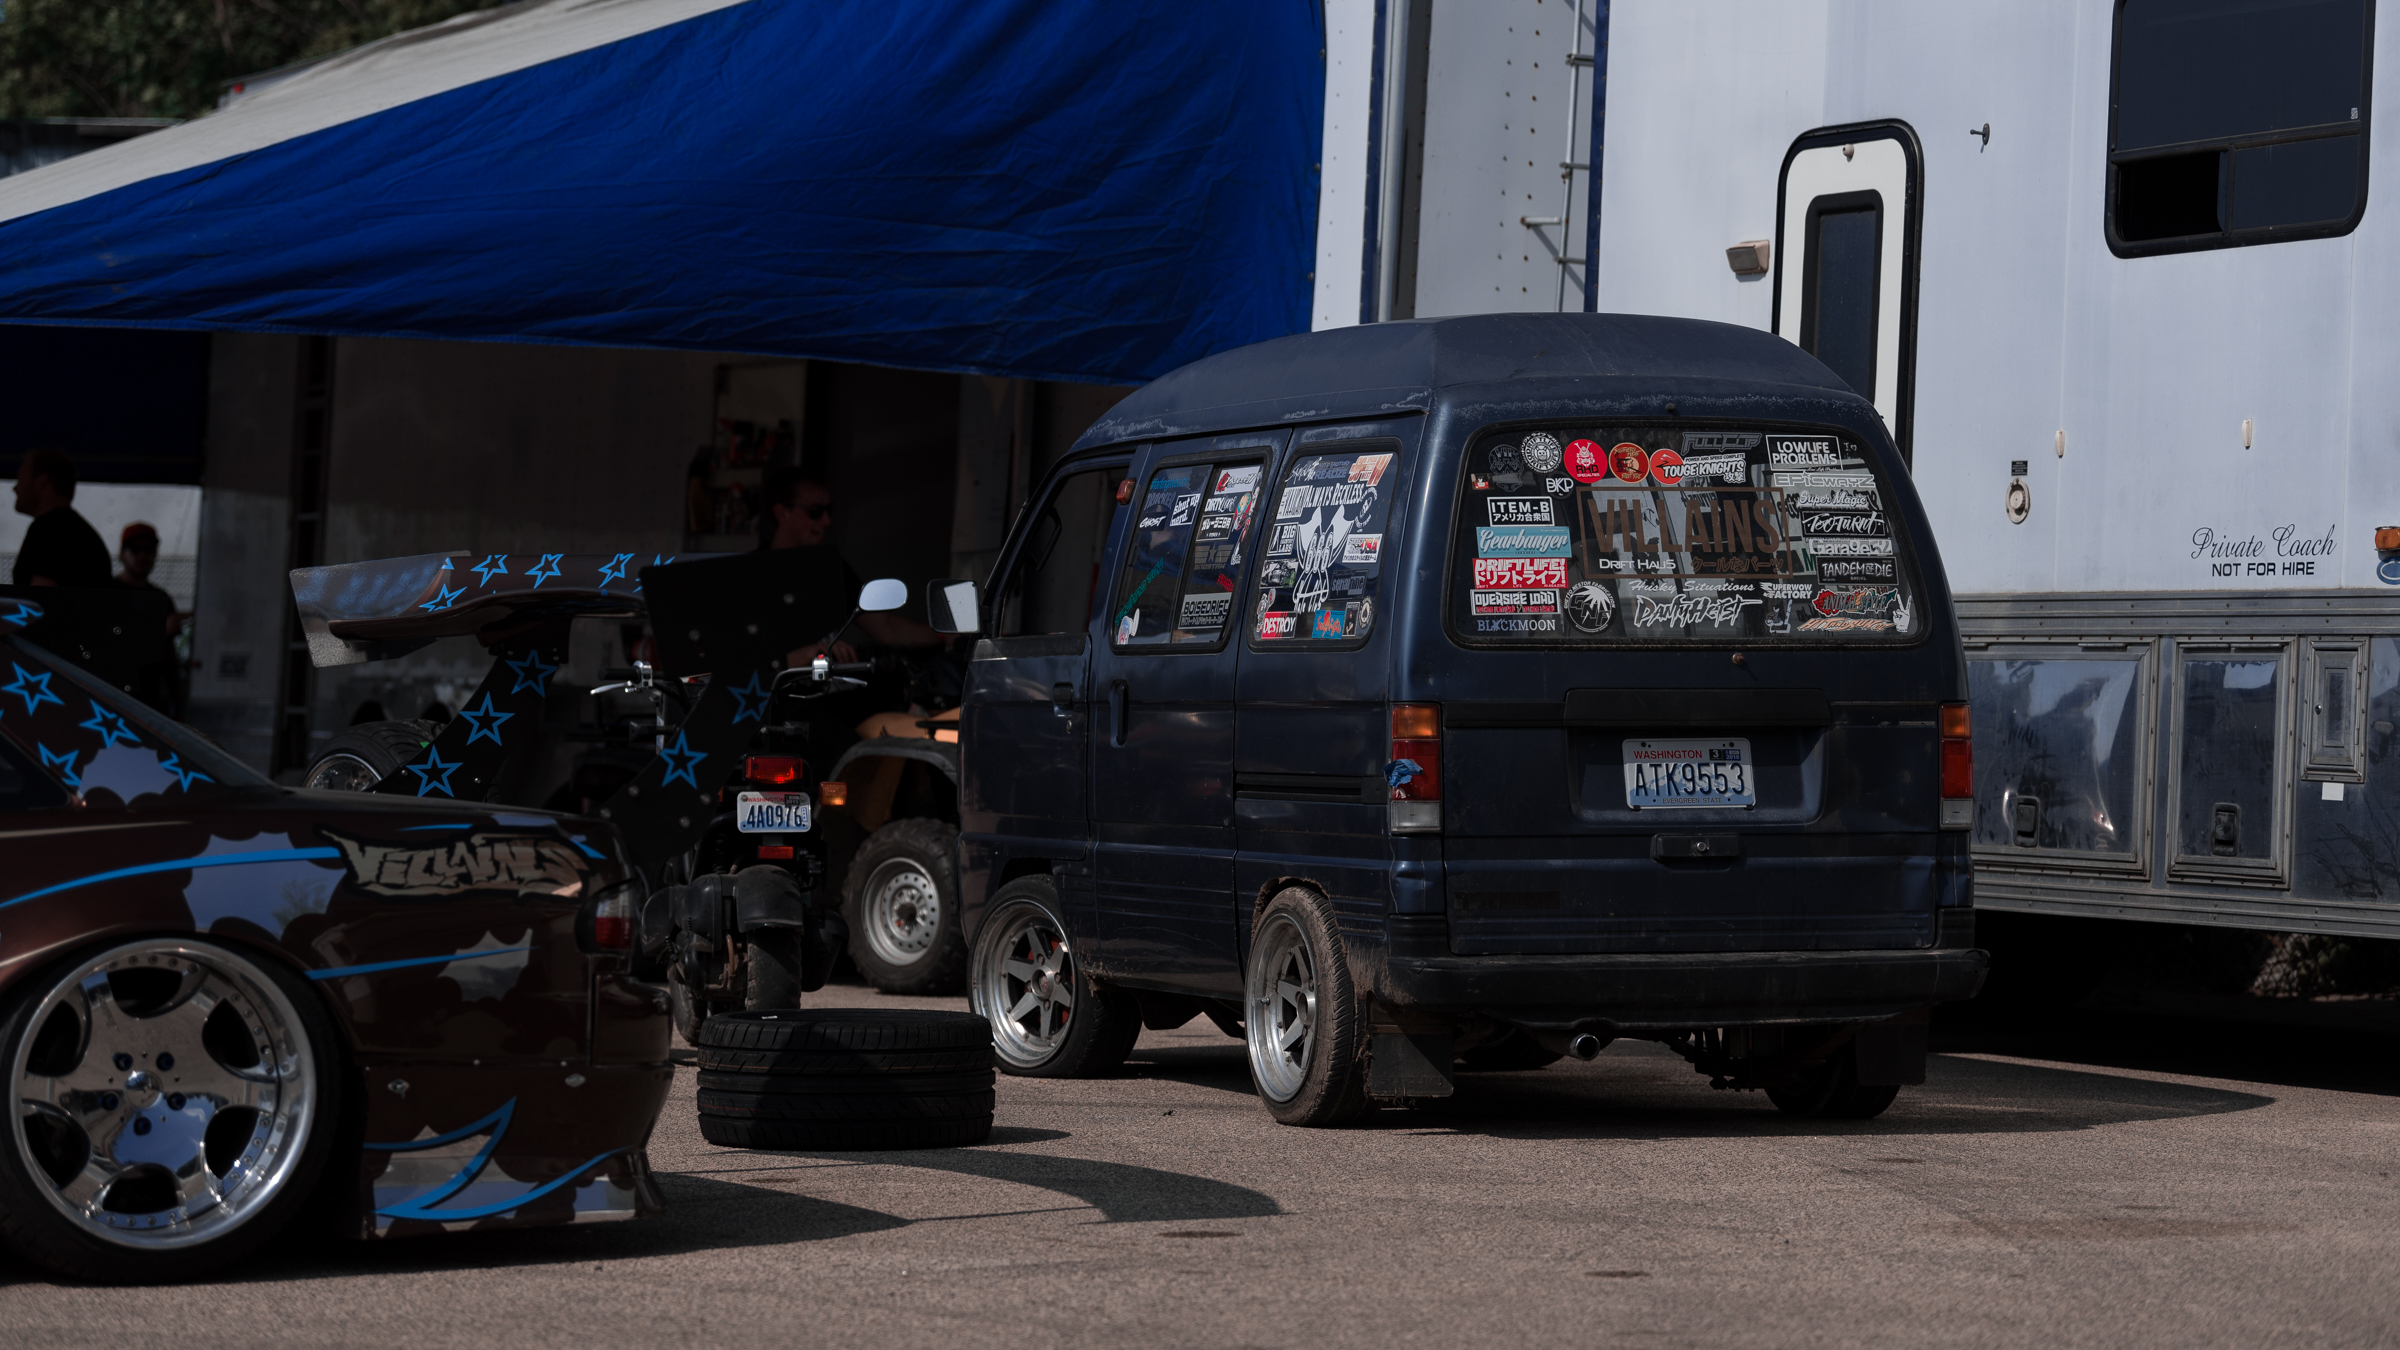 Villains unpacking their trailer and getting their extreme wide body D-machines ready.